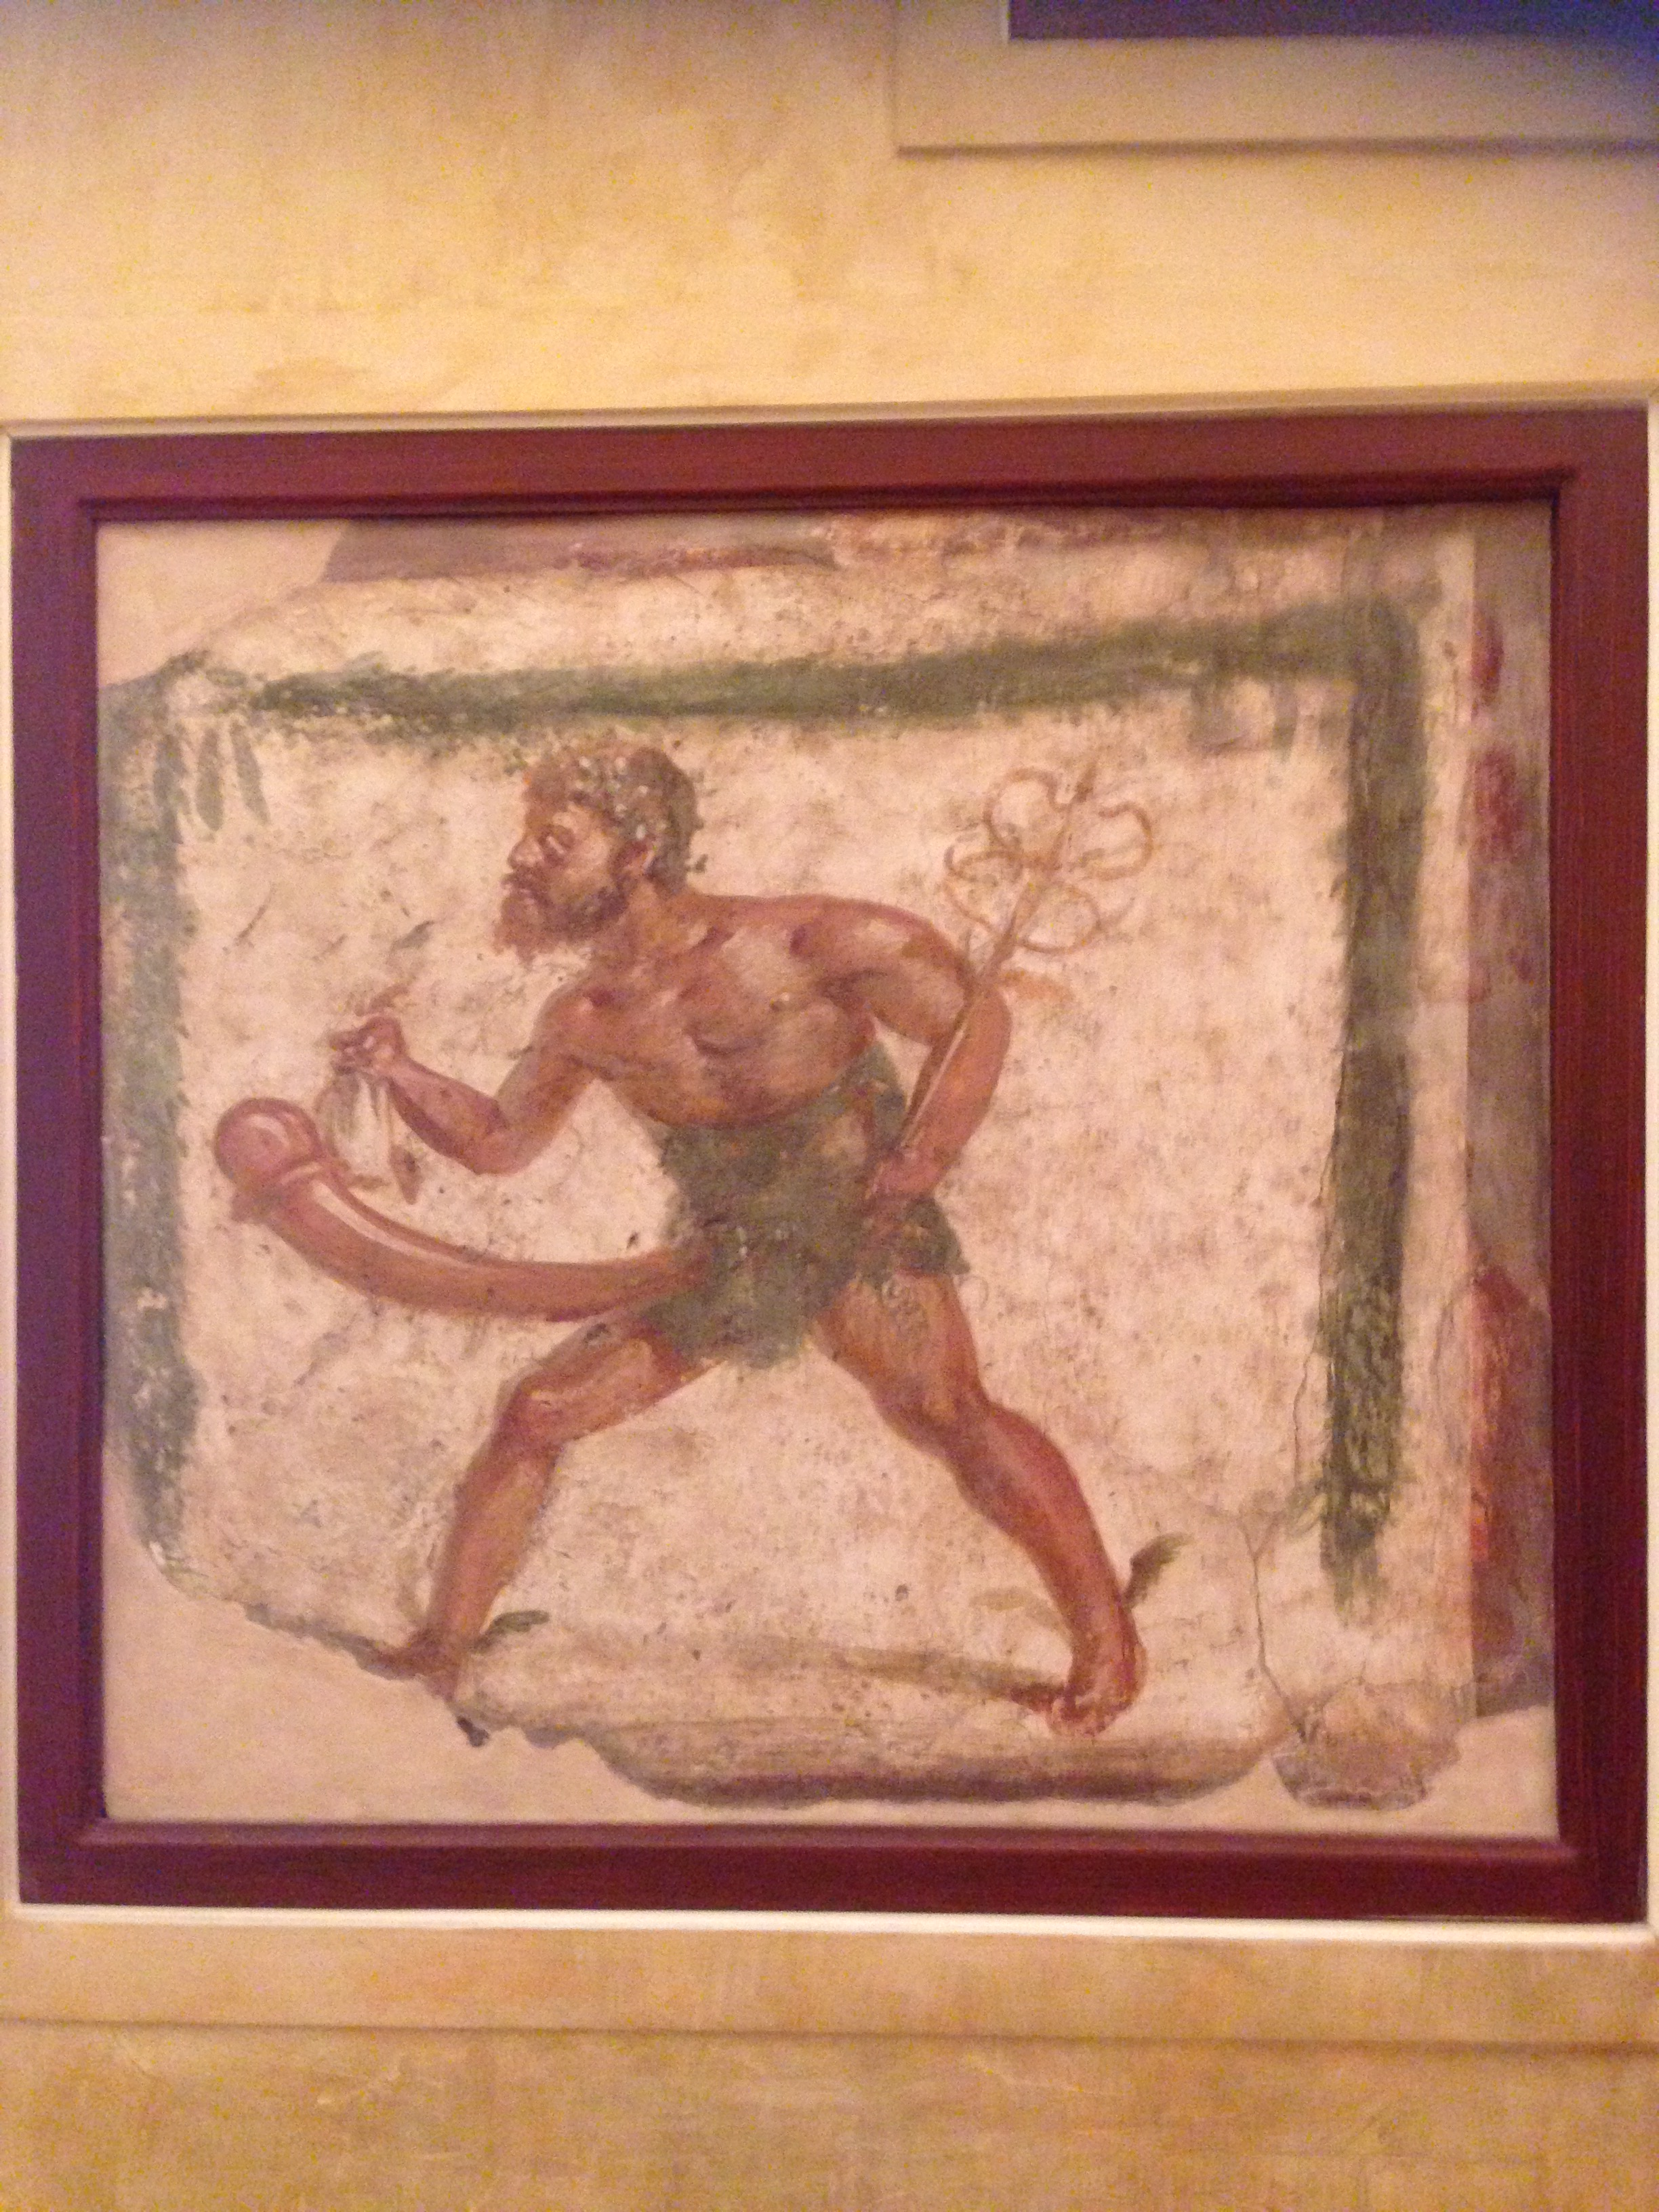 Gay history in the Naples Archaeological Museum